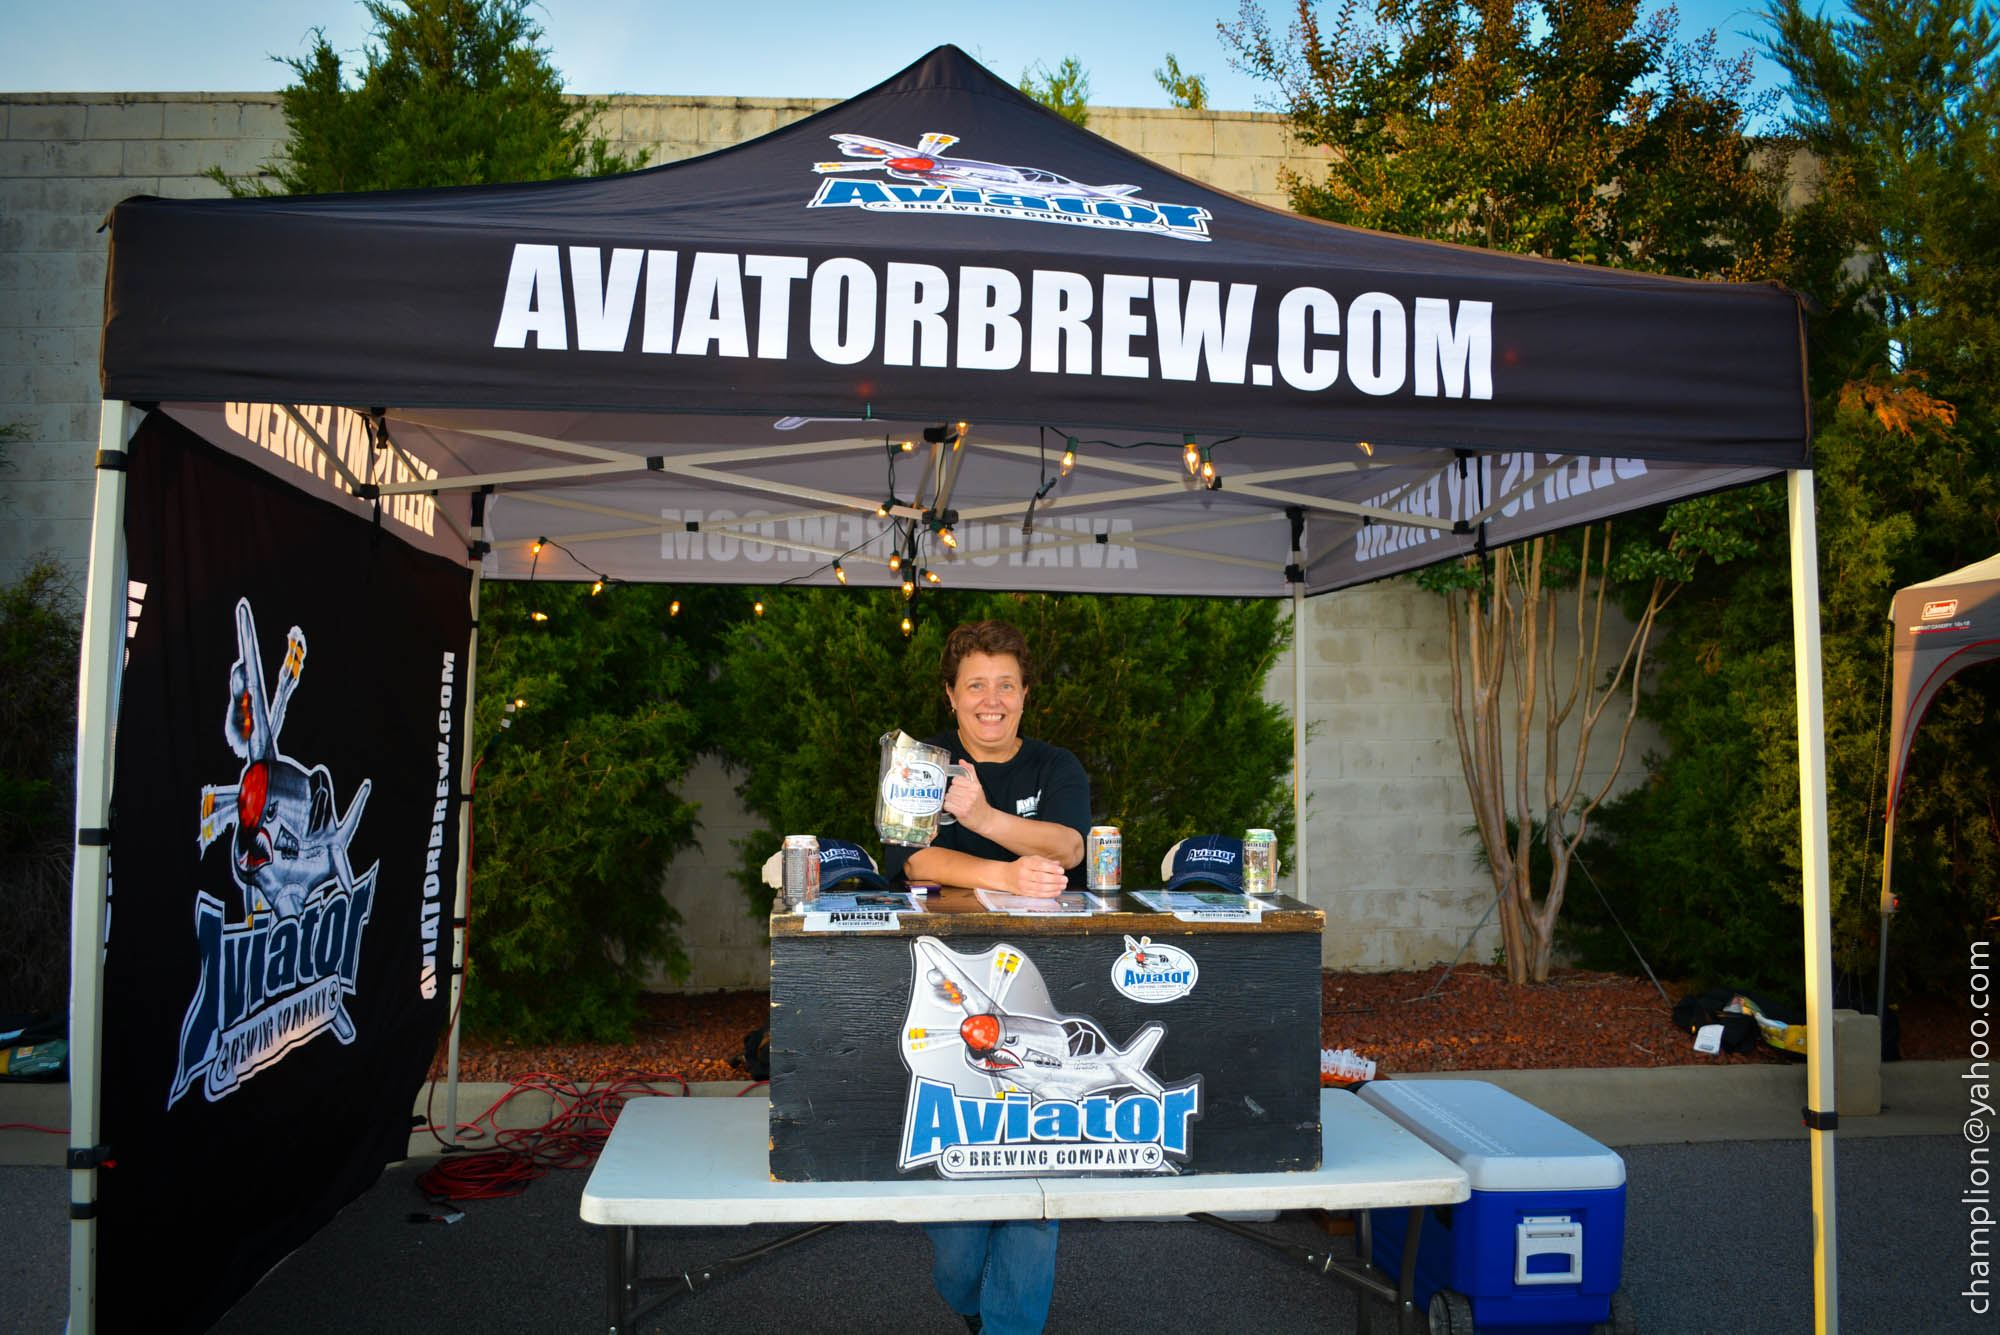 Aviator Brewery and other local breweries will be on site.